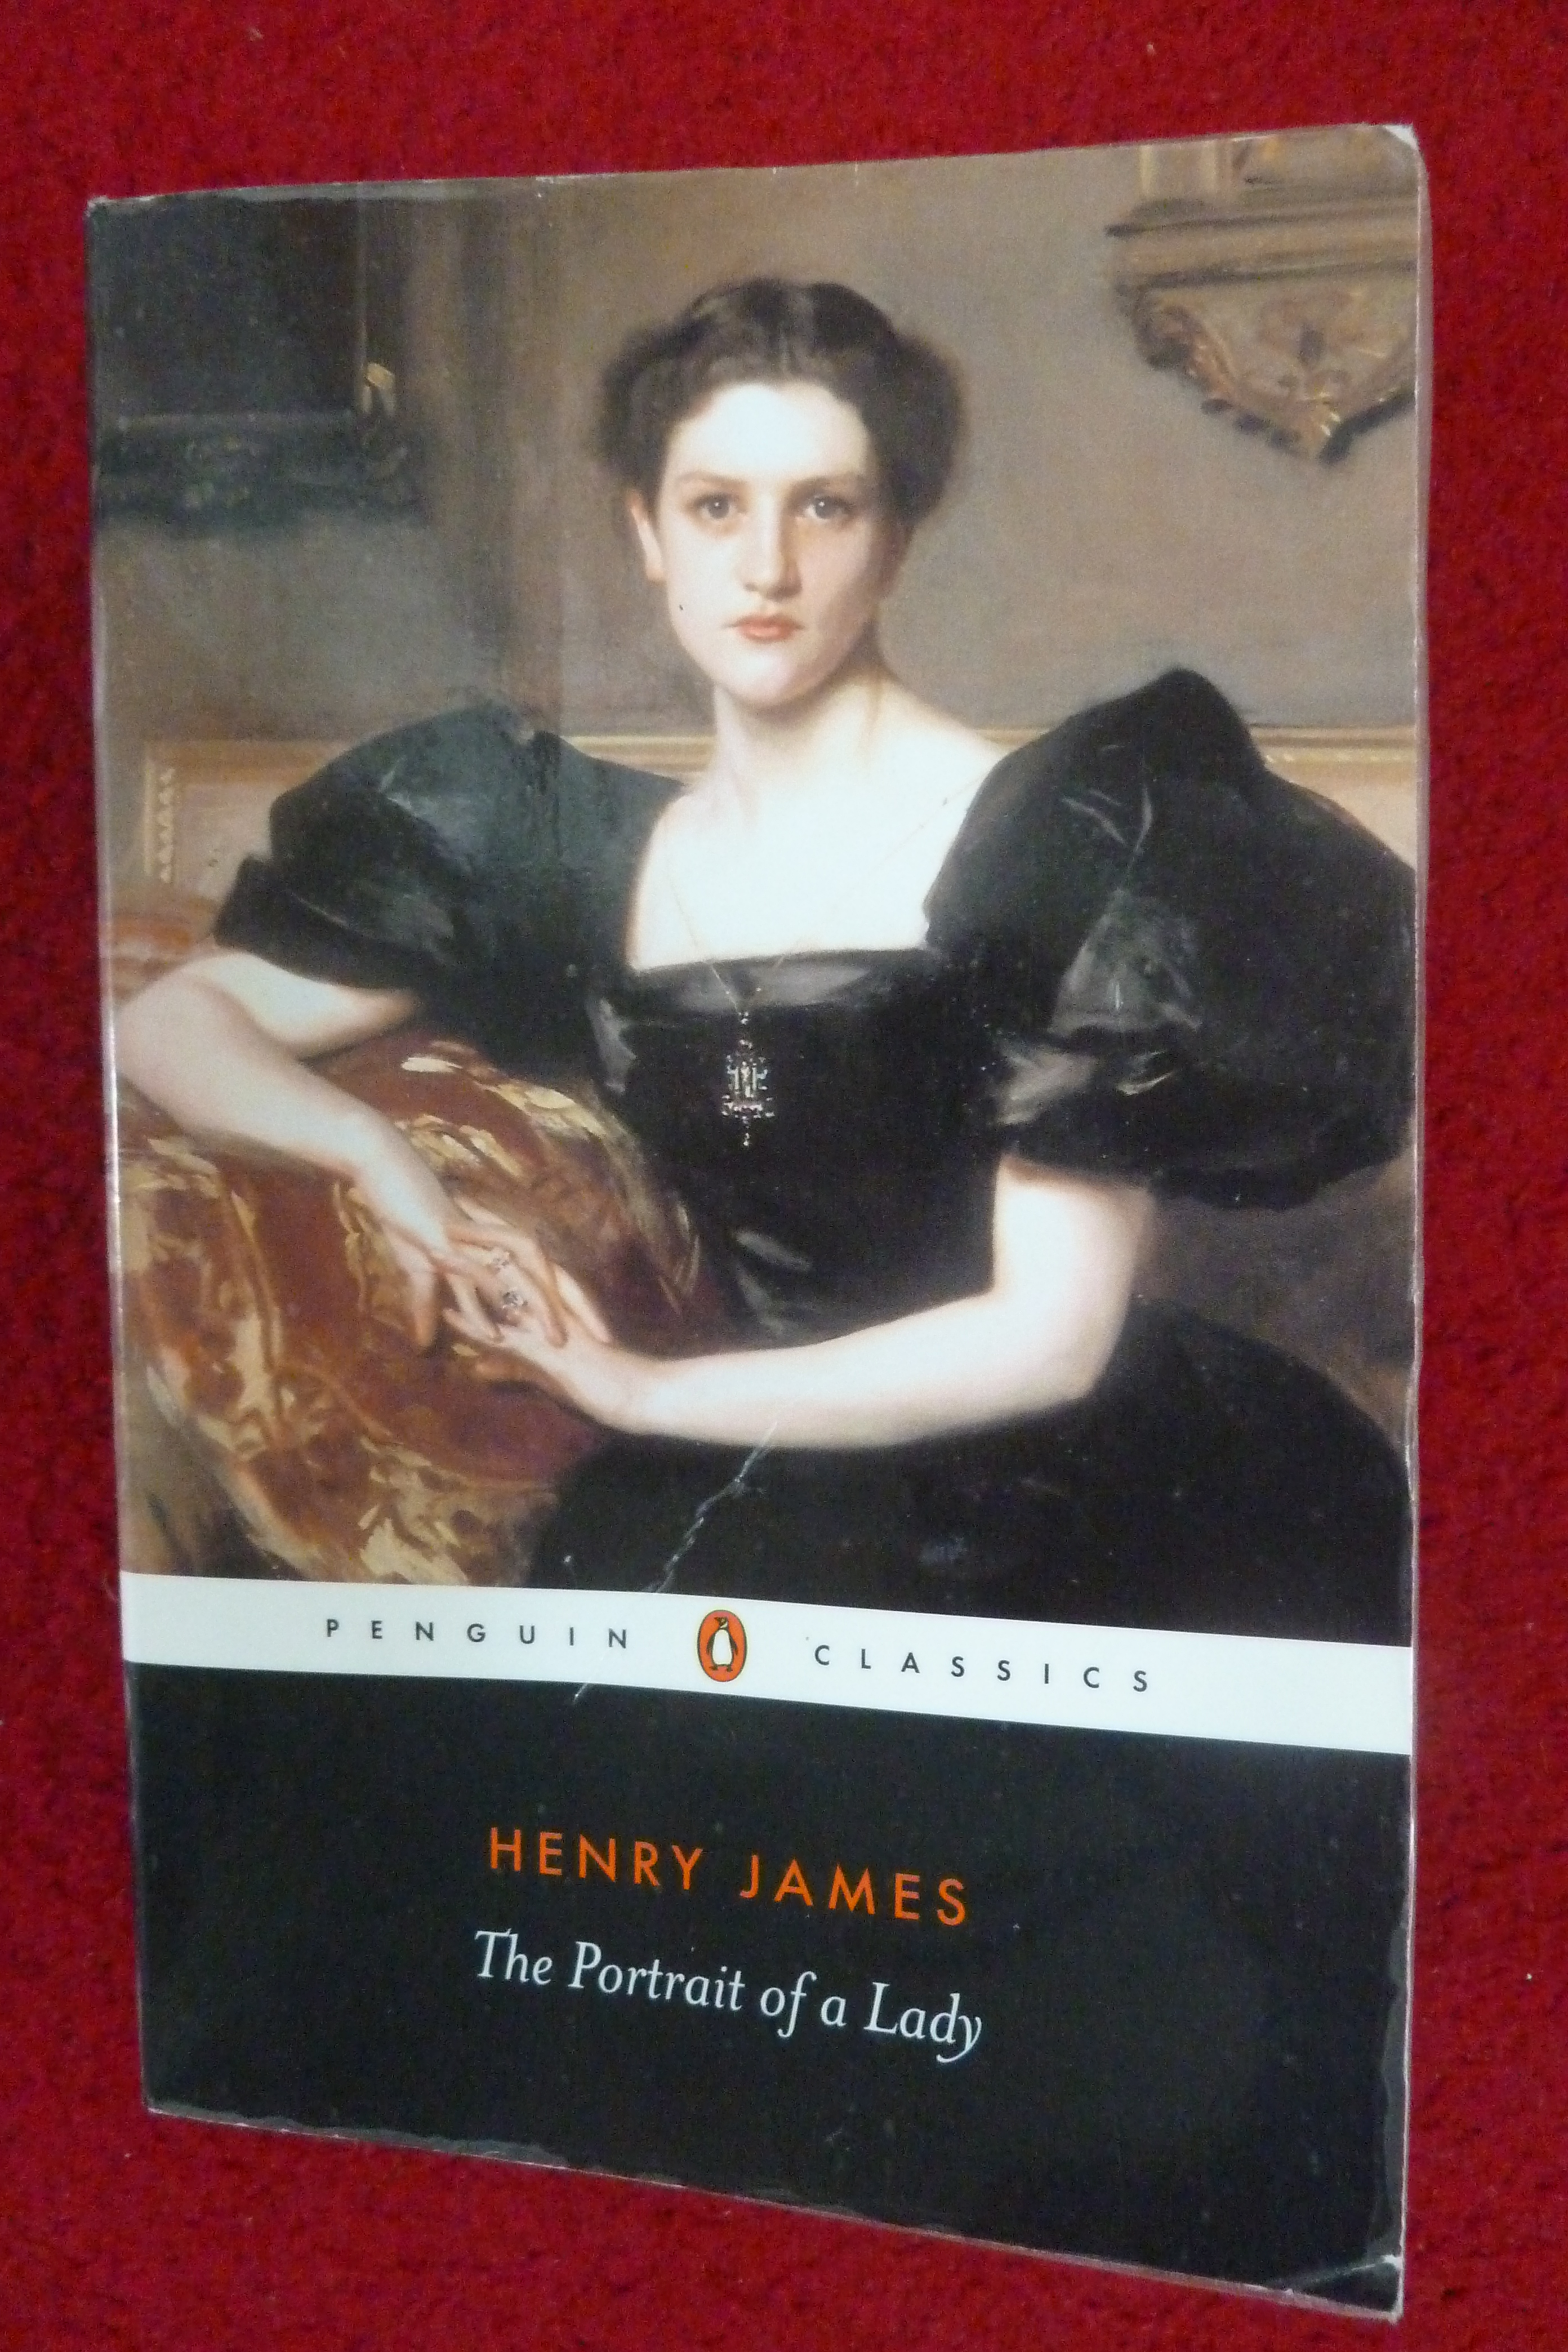 henry james portrait of a lady essay The portrait of a lady, usually regarded as the major achievement of henry james's early period of fiction writing, is also recognized to be one of literature's great novels in it, james.